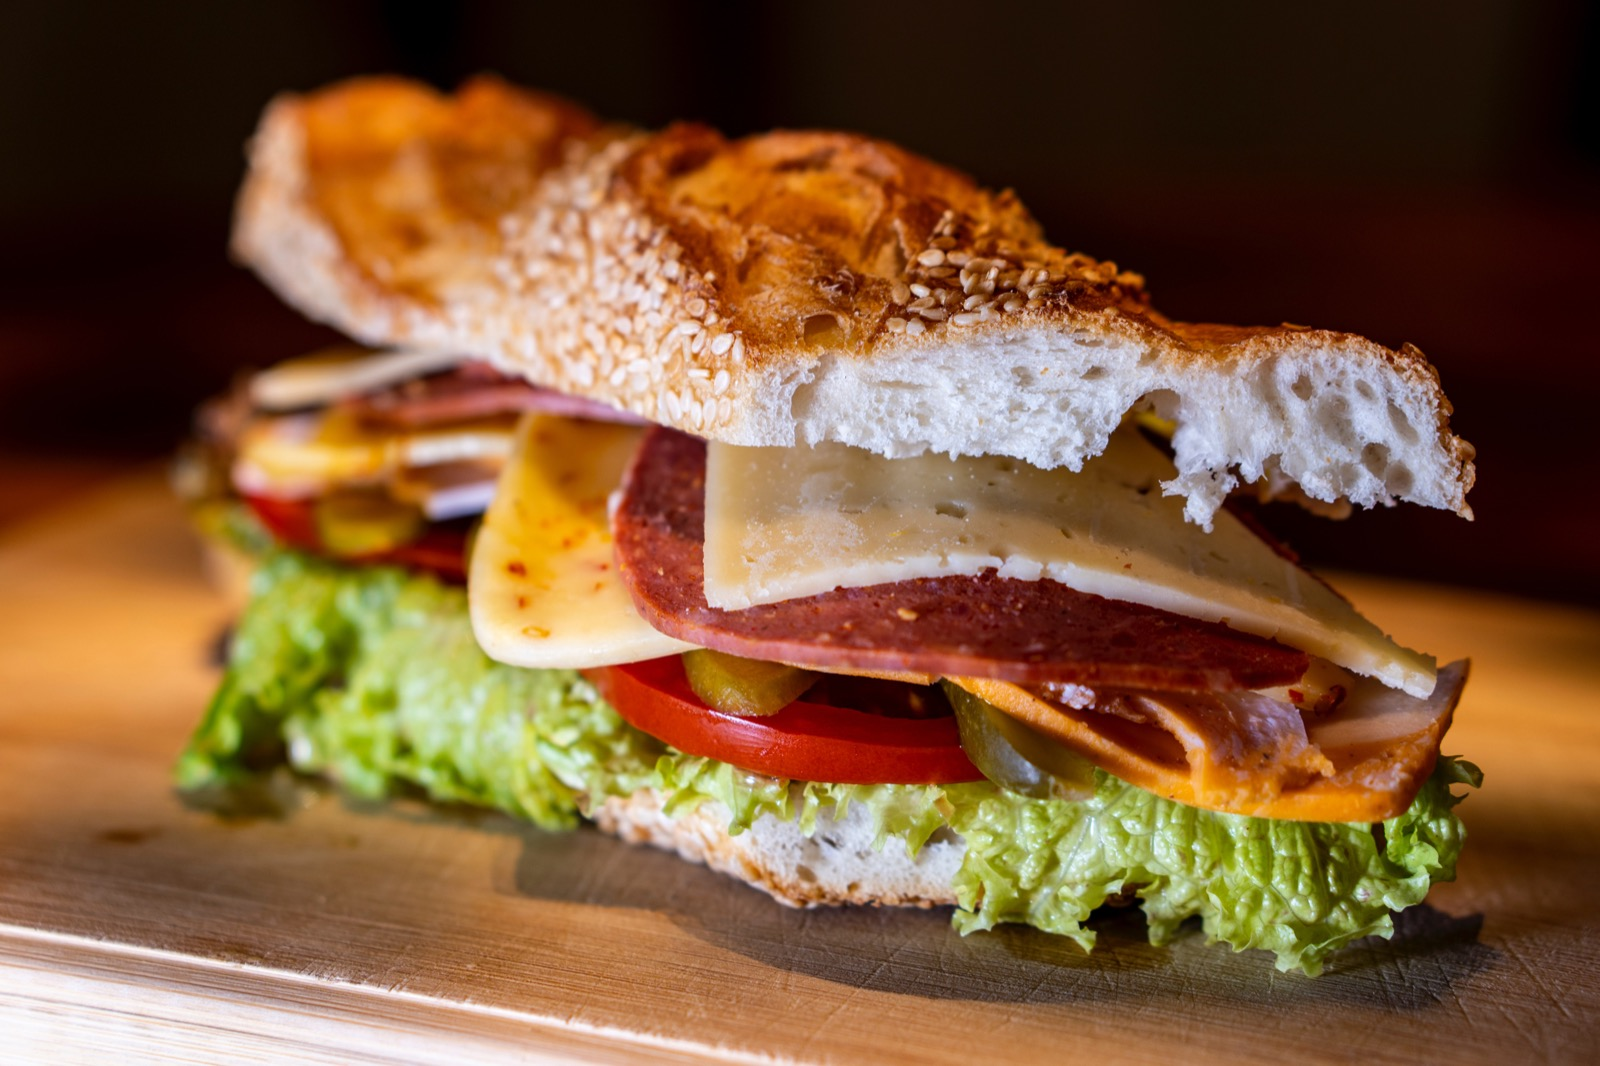 Sandwiches to Take Away - Order Online